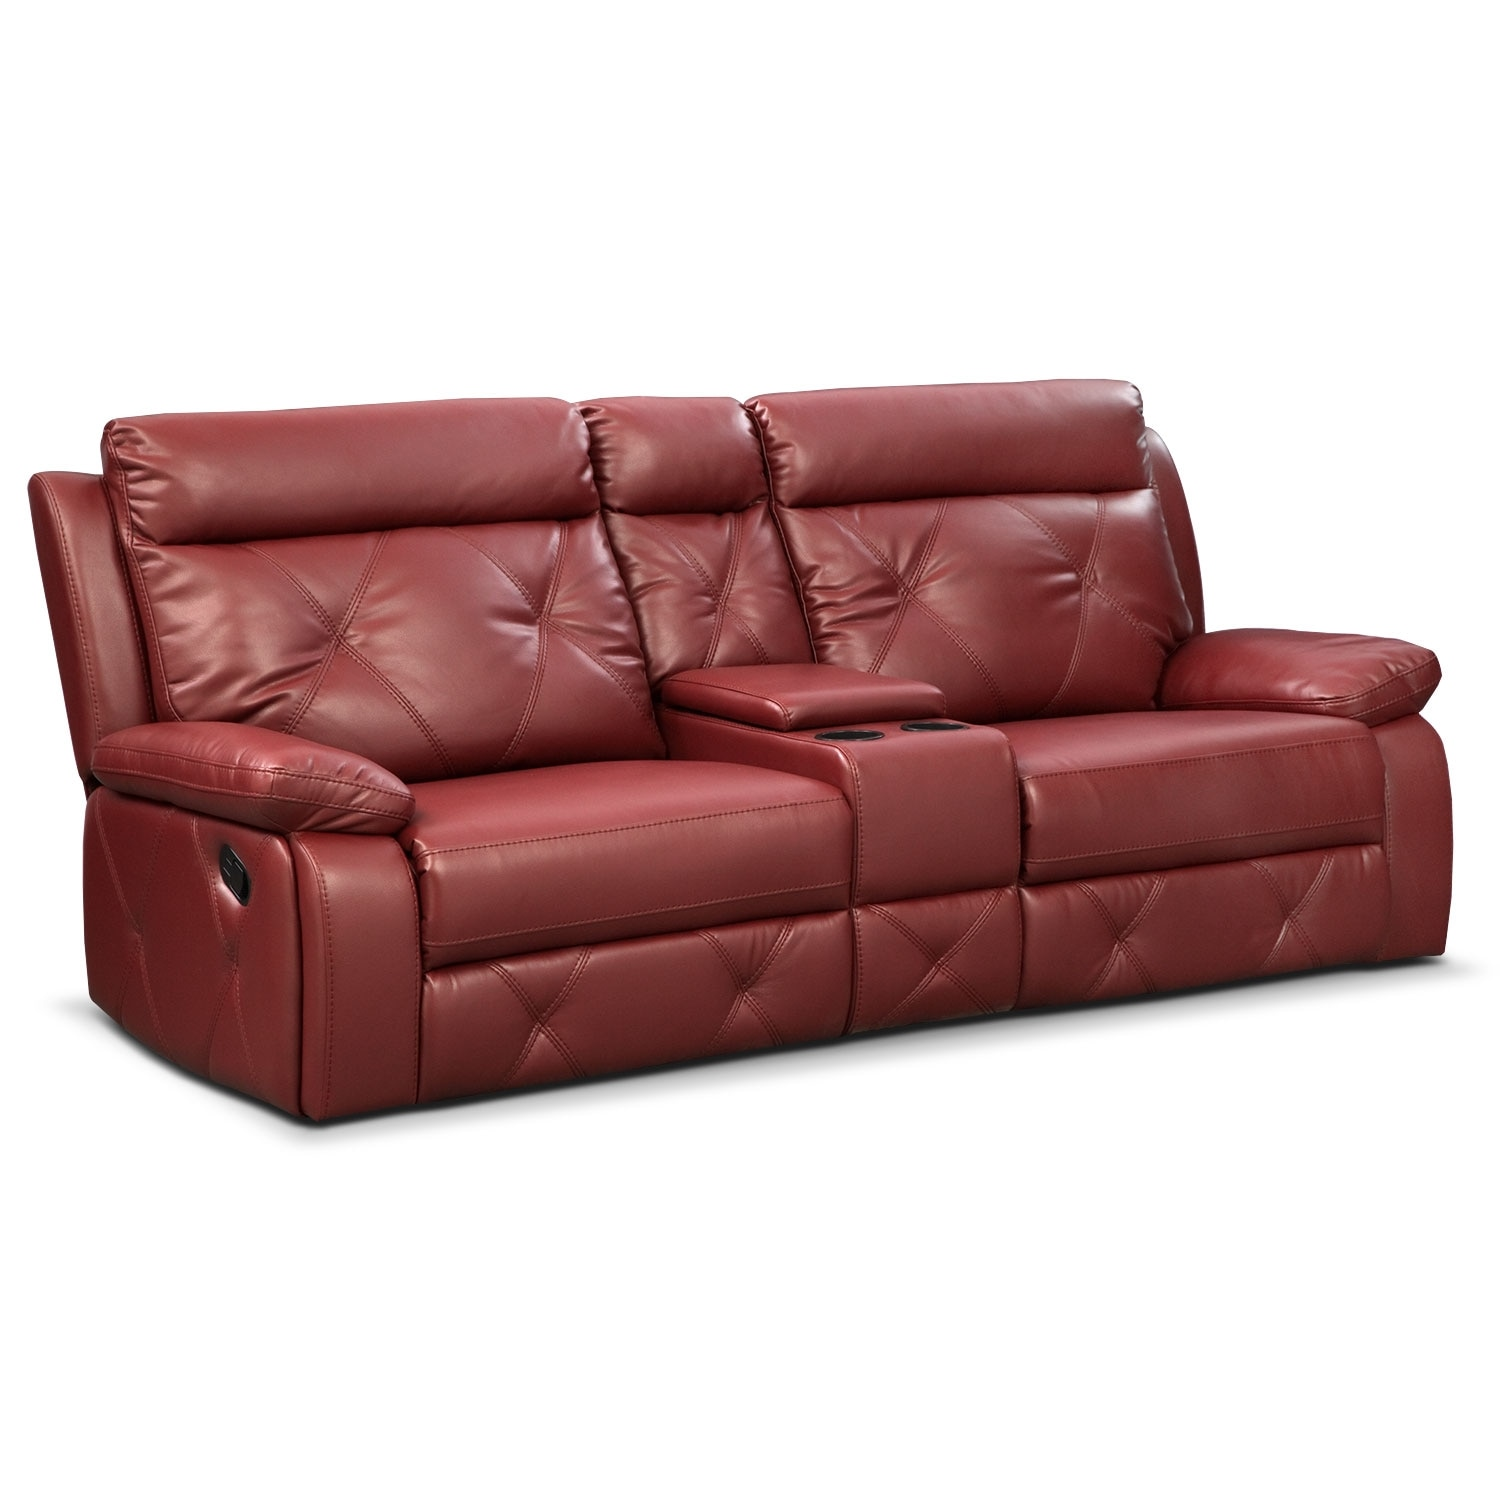 Dante Red 3 Pc. Reclining Sofa with Console